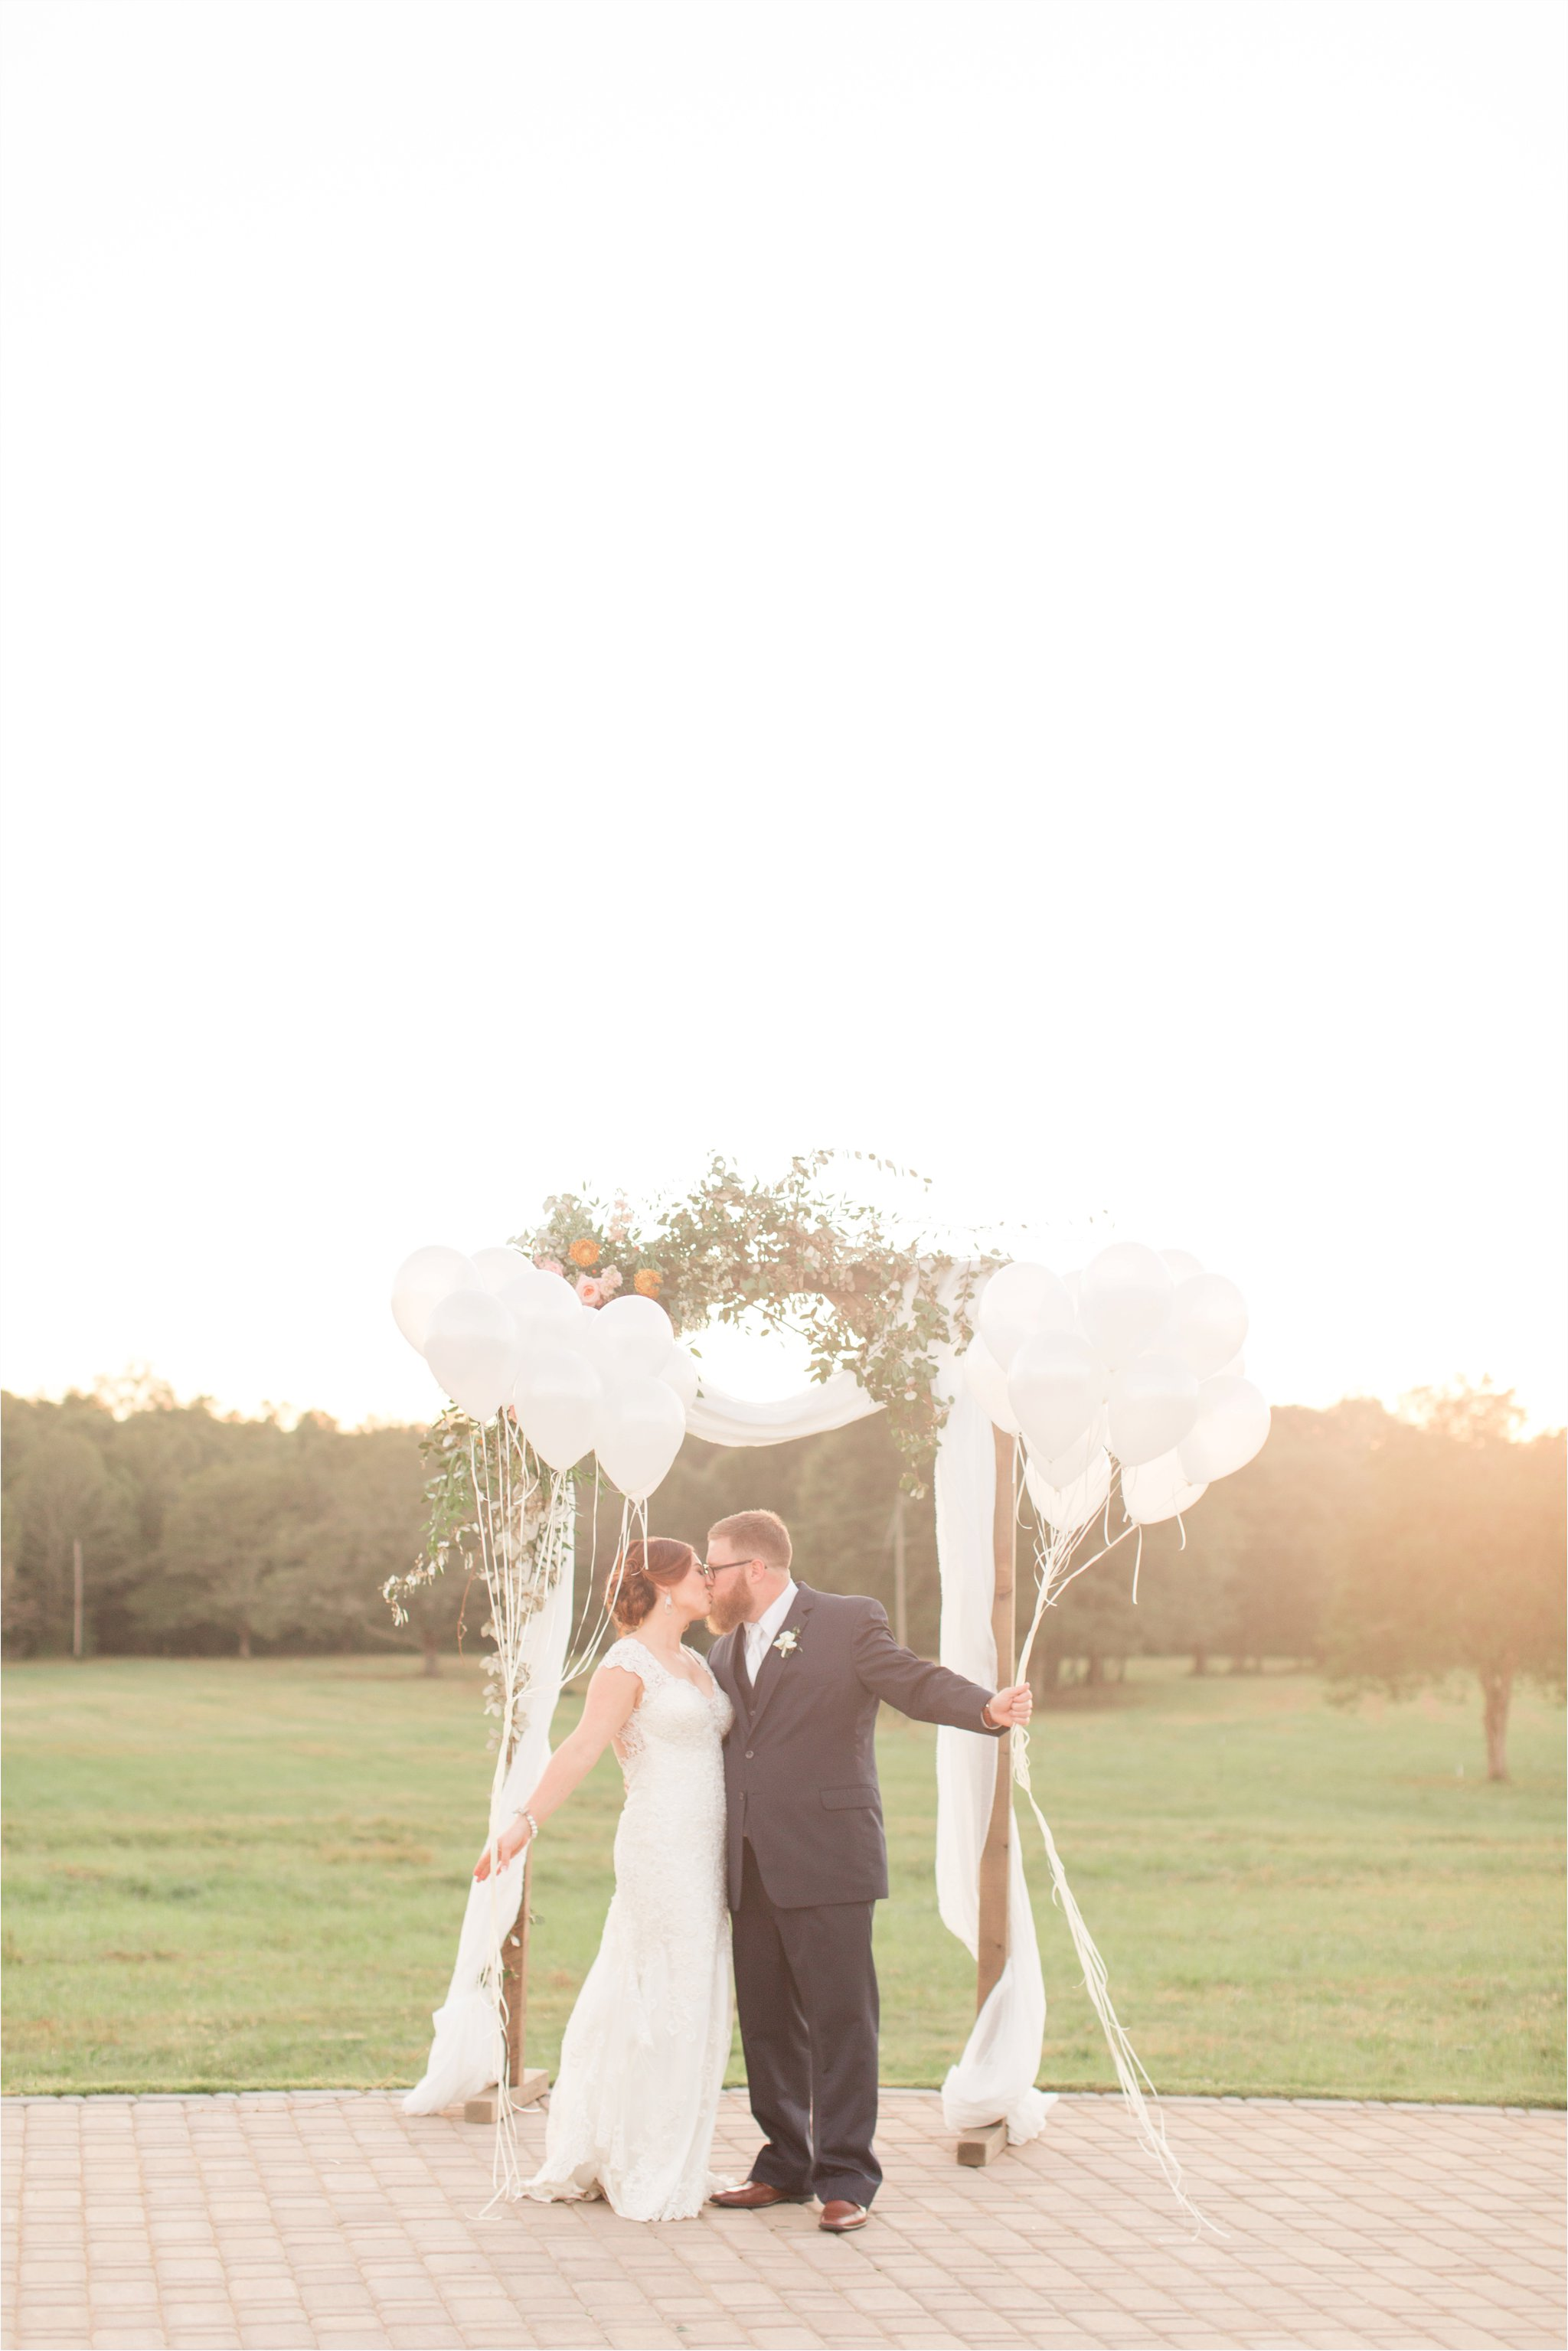 The Barn at Sitton Hill Farm Wedding | South Carolina Wedding Photographer | Christa Rene Photography